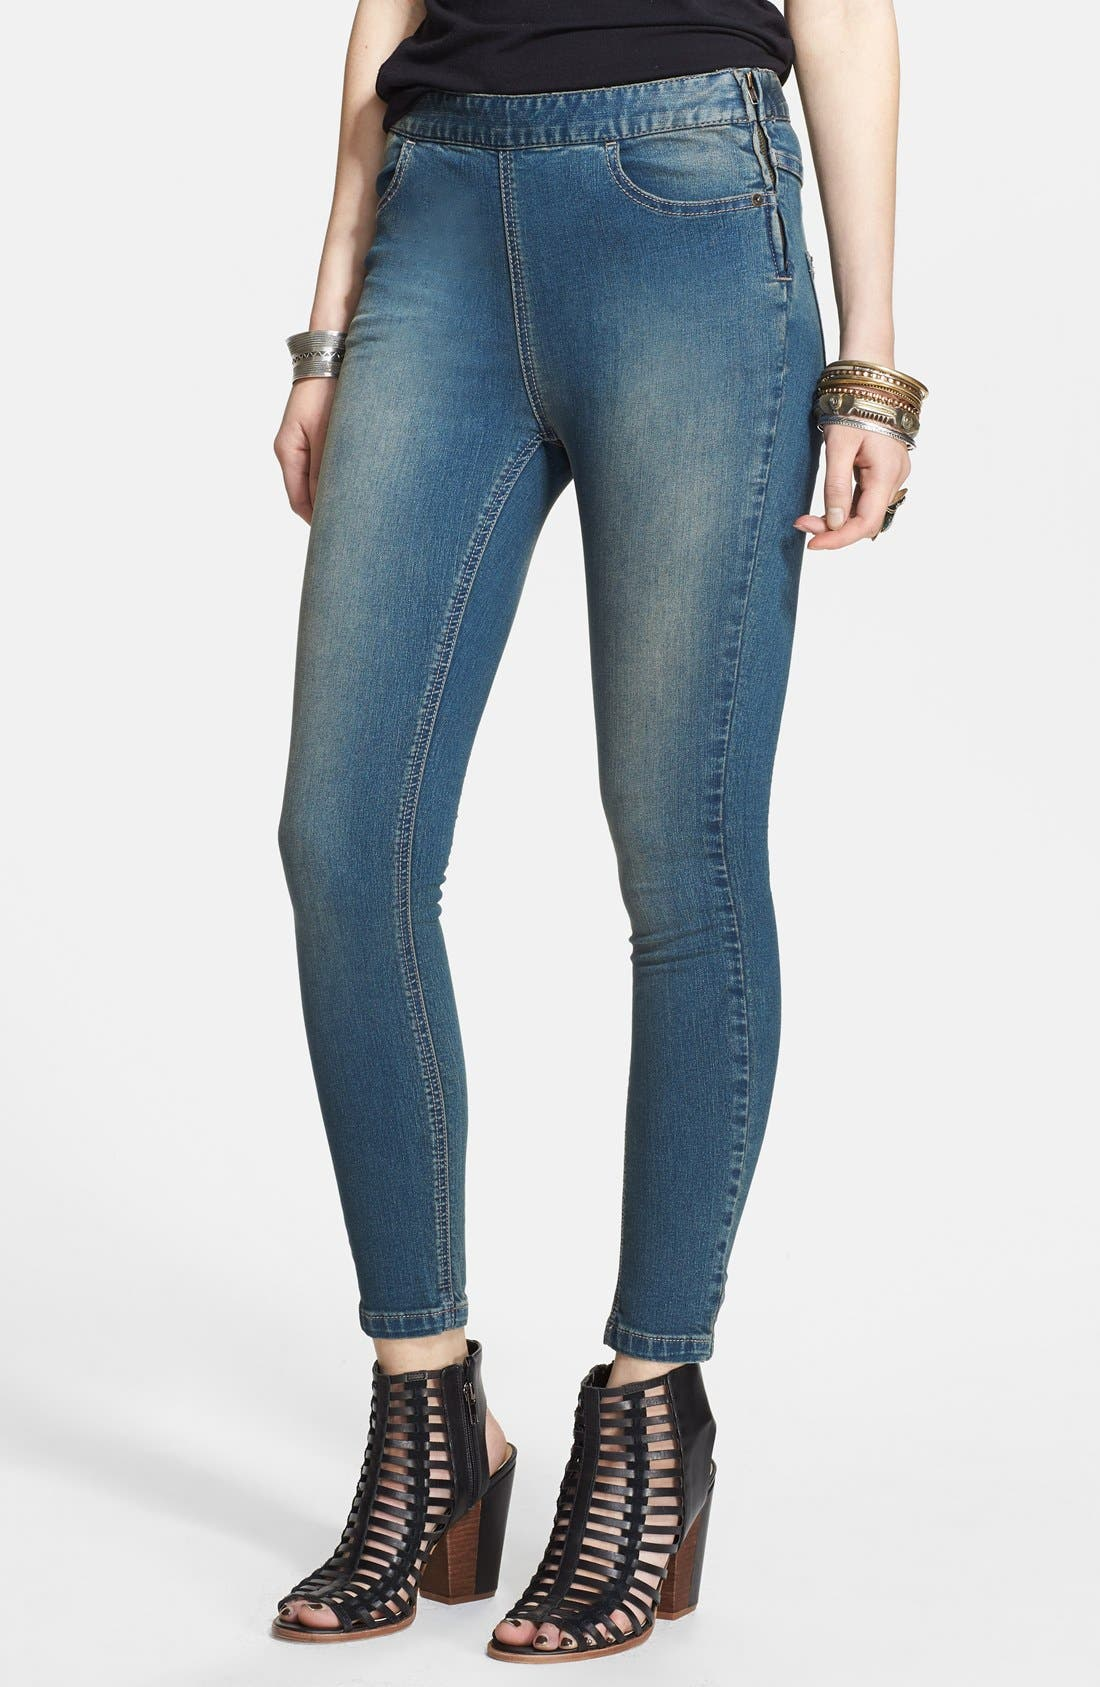 Alternate Image 1 Selected - Free People High Rise Side Zip Skinny Jeans (Coyote)